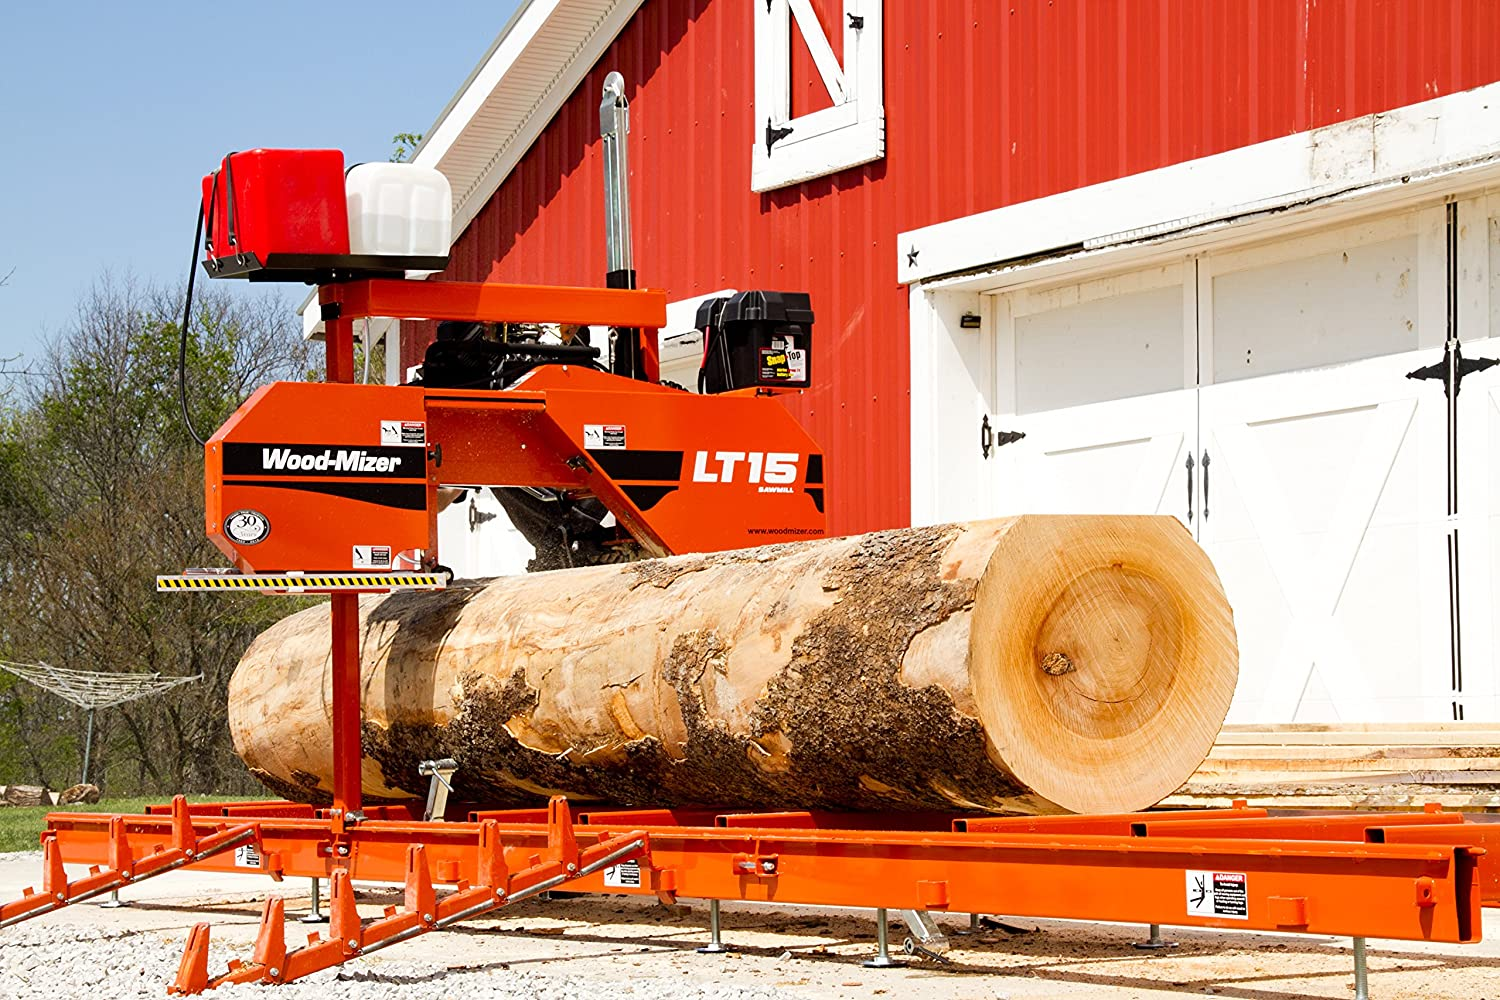 Wood-Mizer LT15 Portable Sawmill with 19 HP Gas Engine